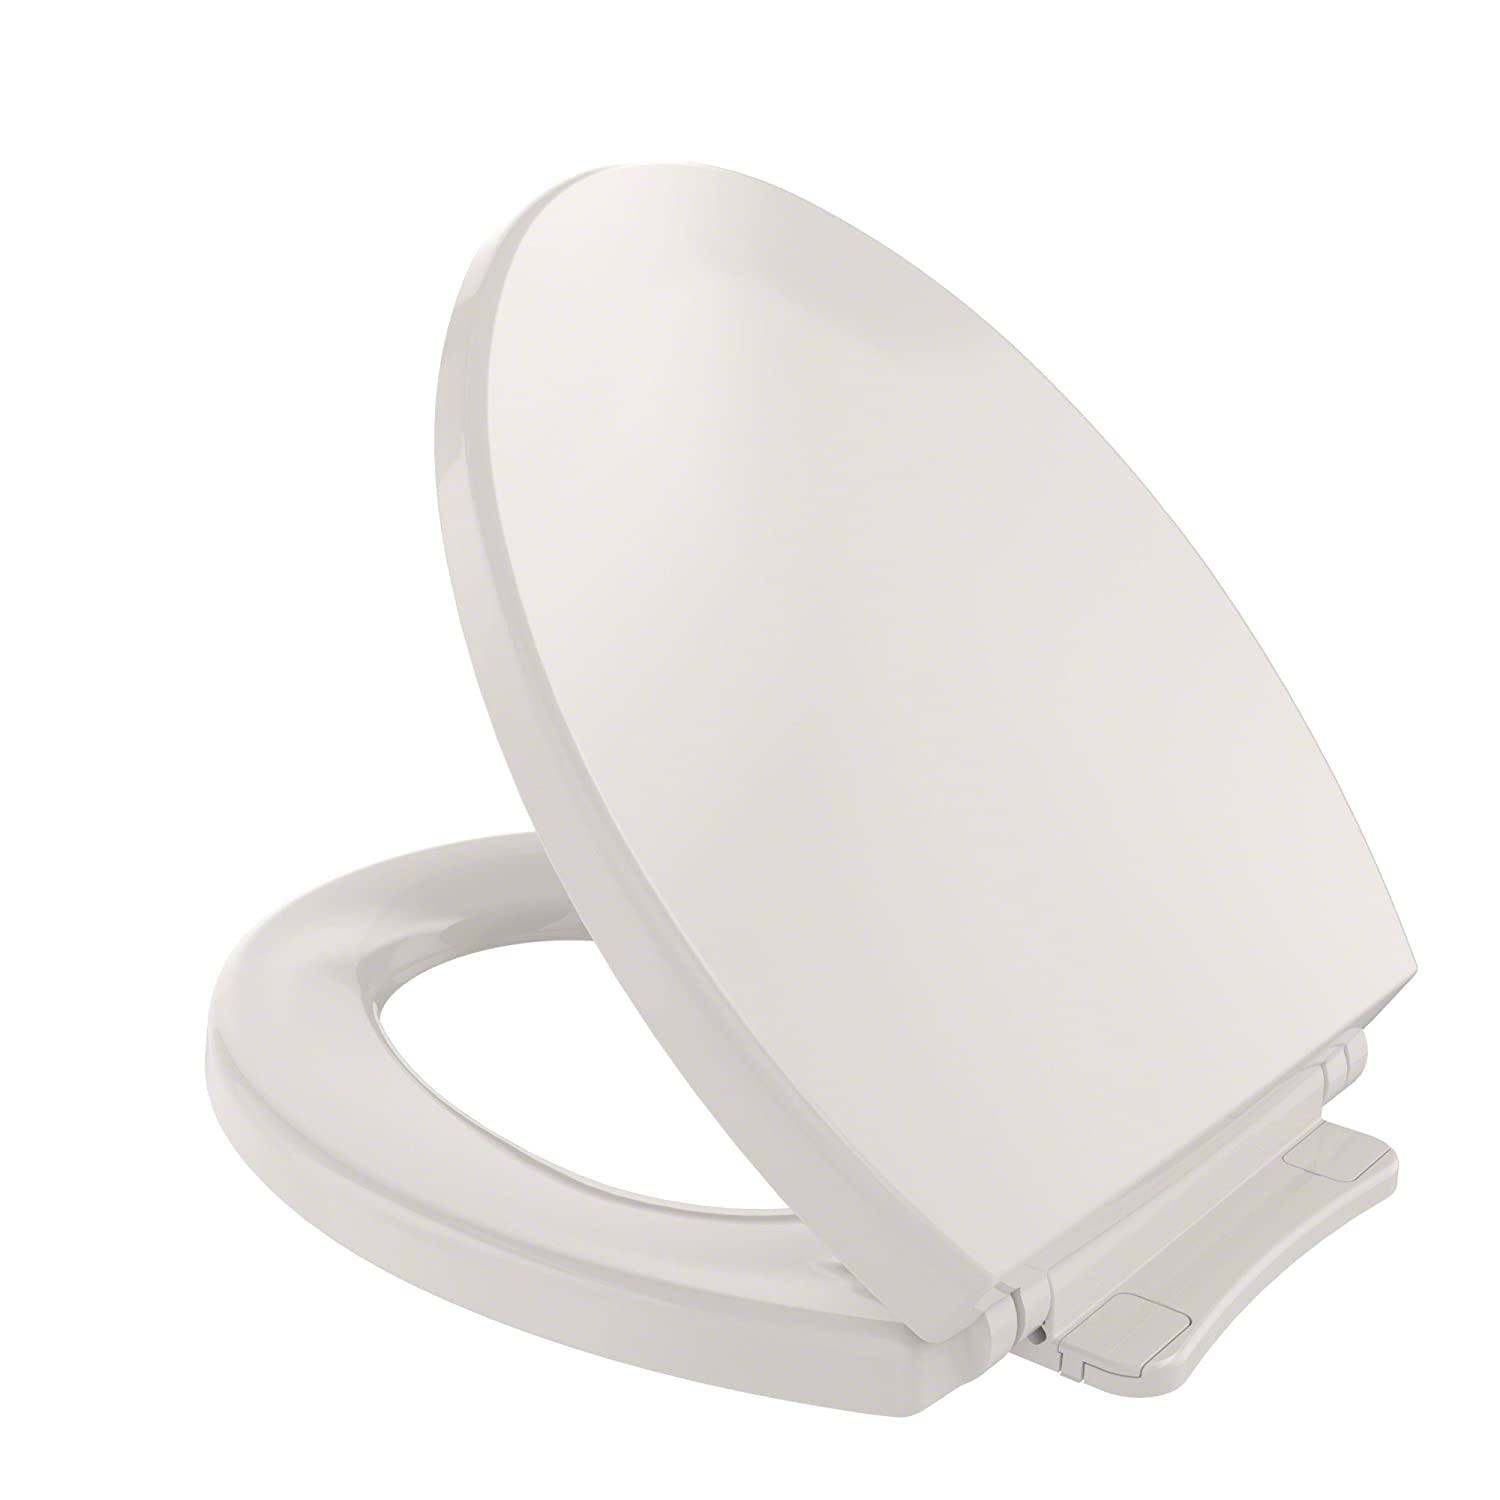 TOTO SS114#03 Transitional SoftClose Elongated Toilet Seat, Bone ...